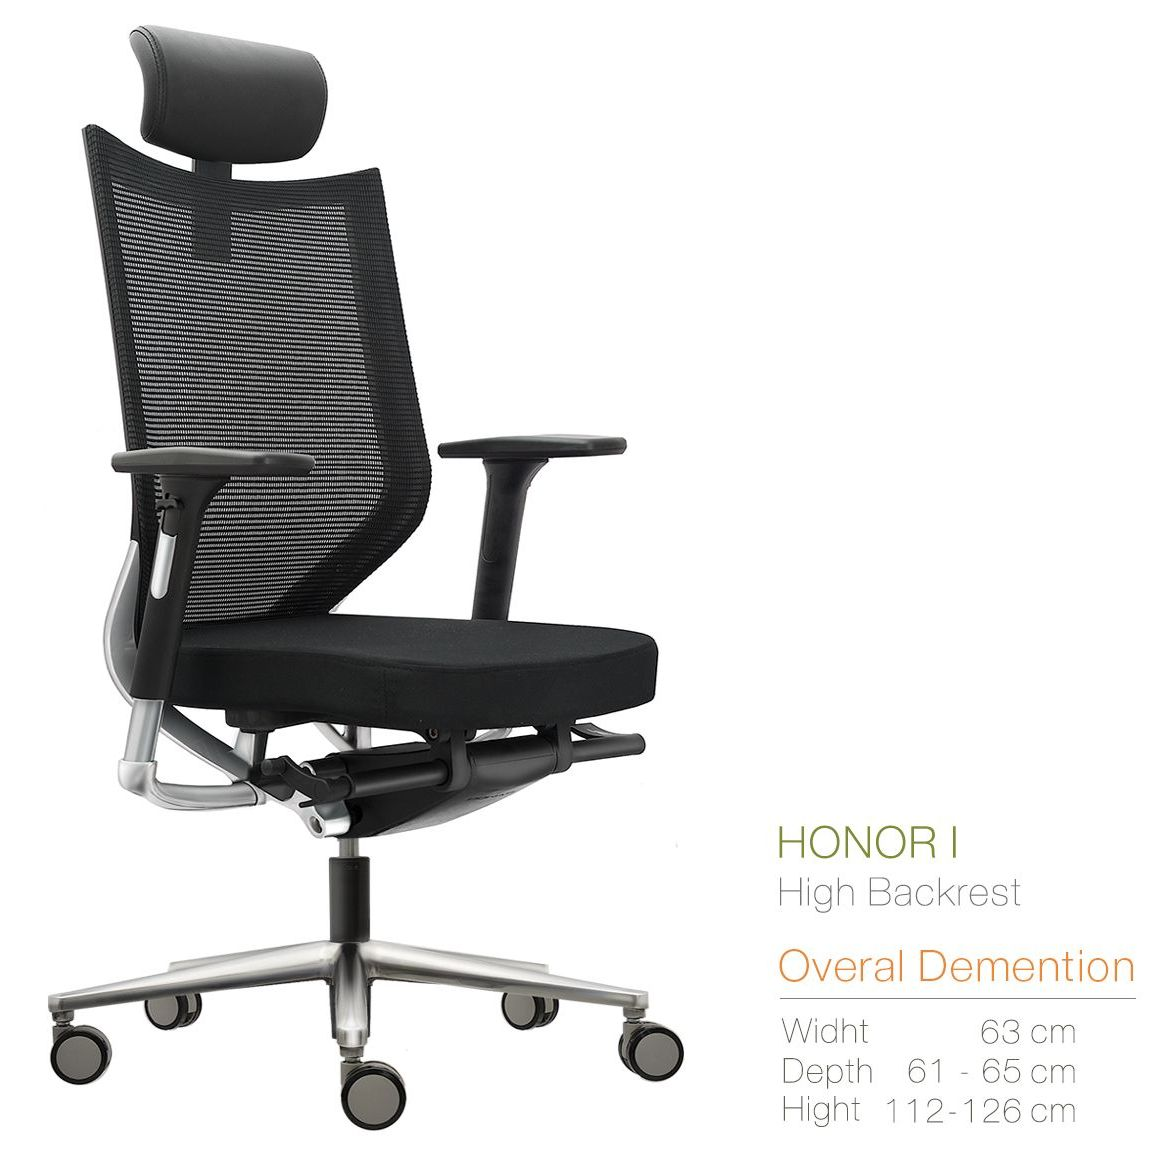 Kursi Kantor Inviti HONOR I (High Backrest)